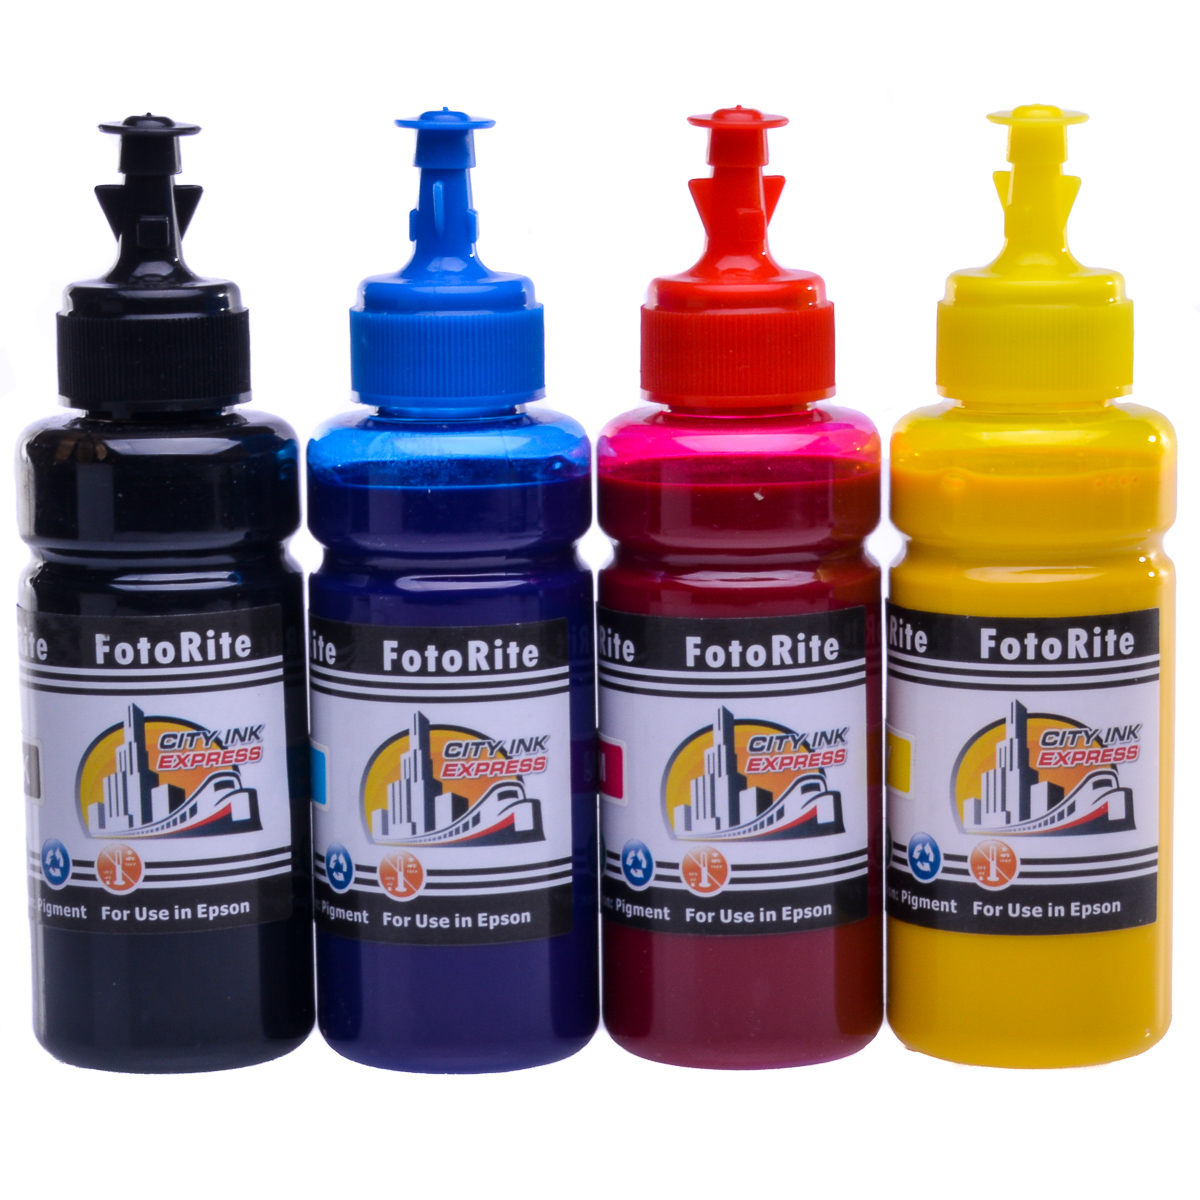 Cheap Multipack pigment ink refill replaces Epson Stylus BX535WD